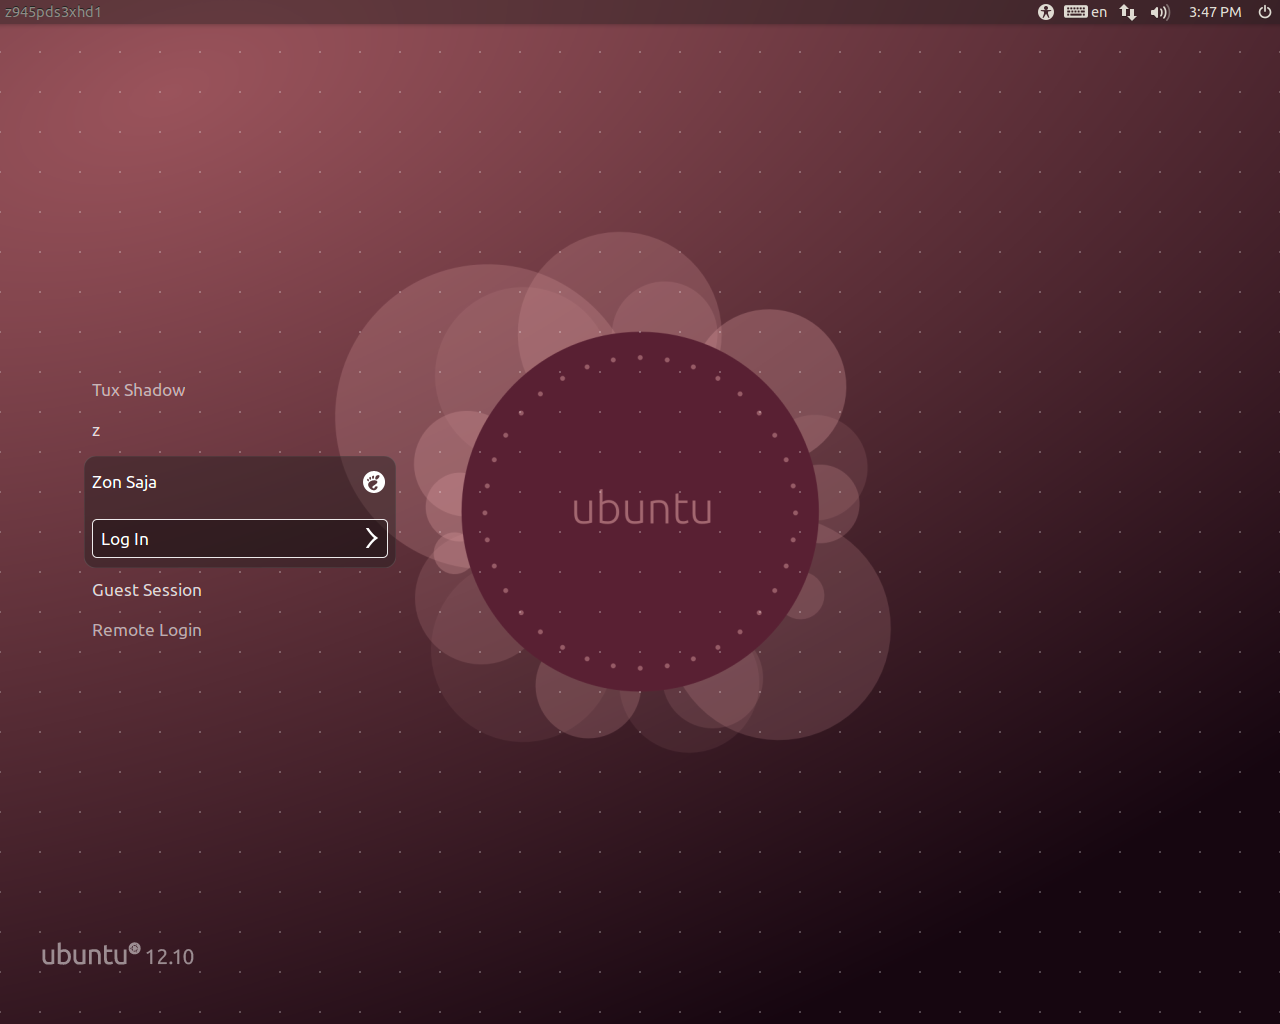 ubuntu change wallpaper terminal Change terminal to desktop background here on ubuntu with the normal terminal worked but if you change the actual desktop background you end-up with 2.